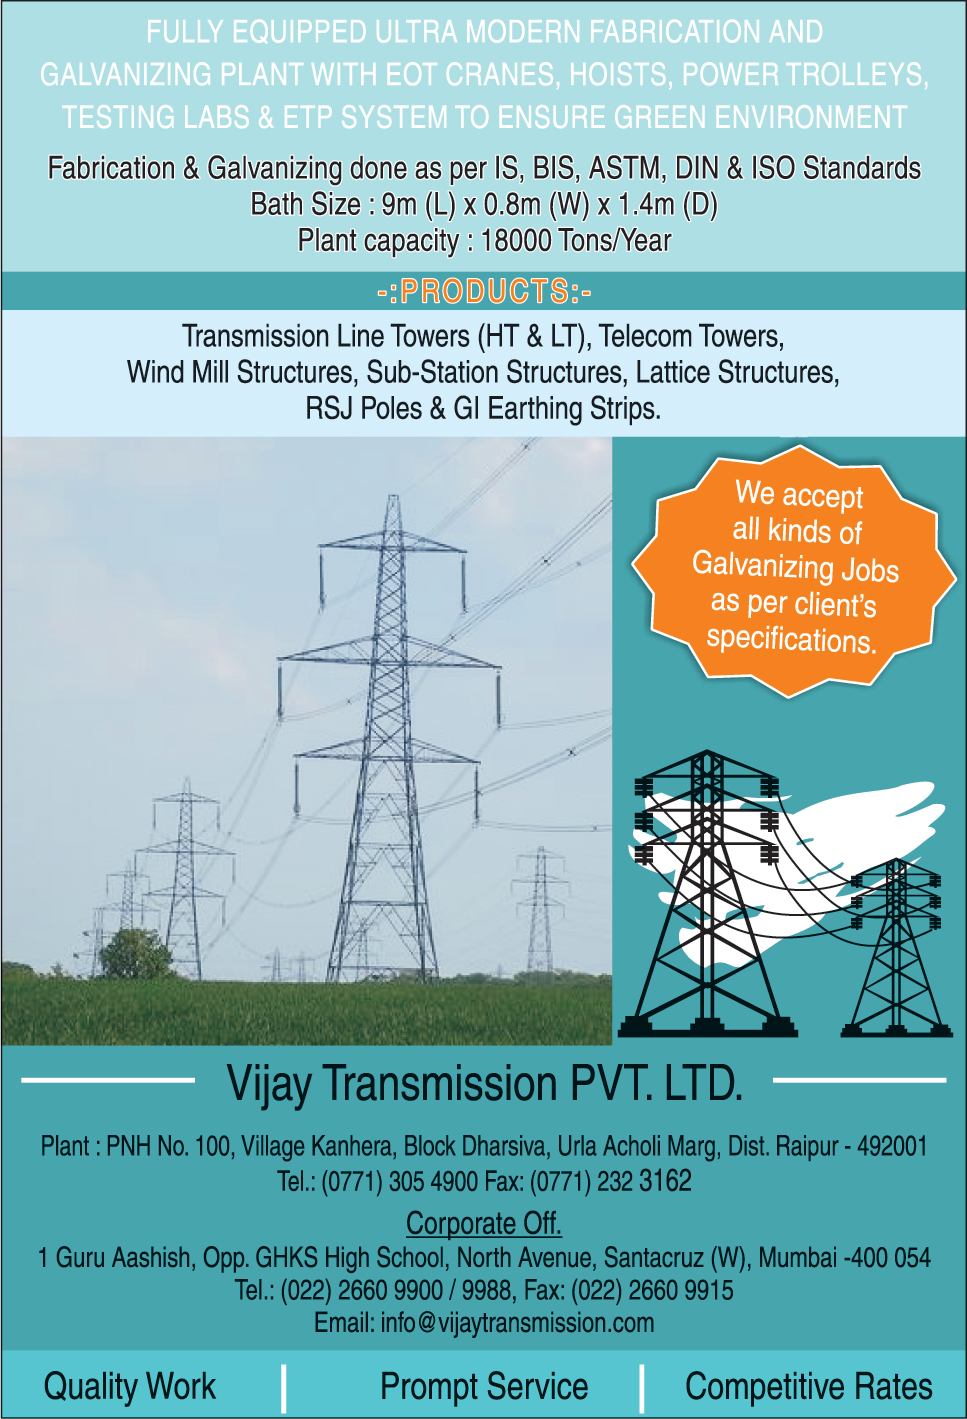 Transmission Line Towers, Telecom Towers, Wind Mill Structures, Sub Station Structures, Lattice structures, RSJ Poles, GI Earthing Strips,Electrical Products, HT Transmission Line Towers, LT Transmission Line Towers